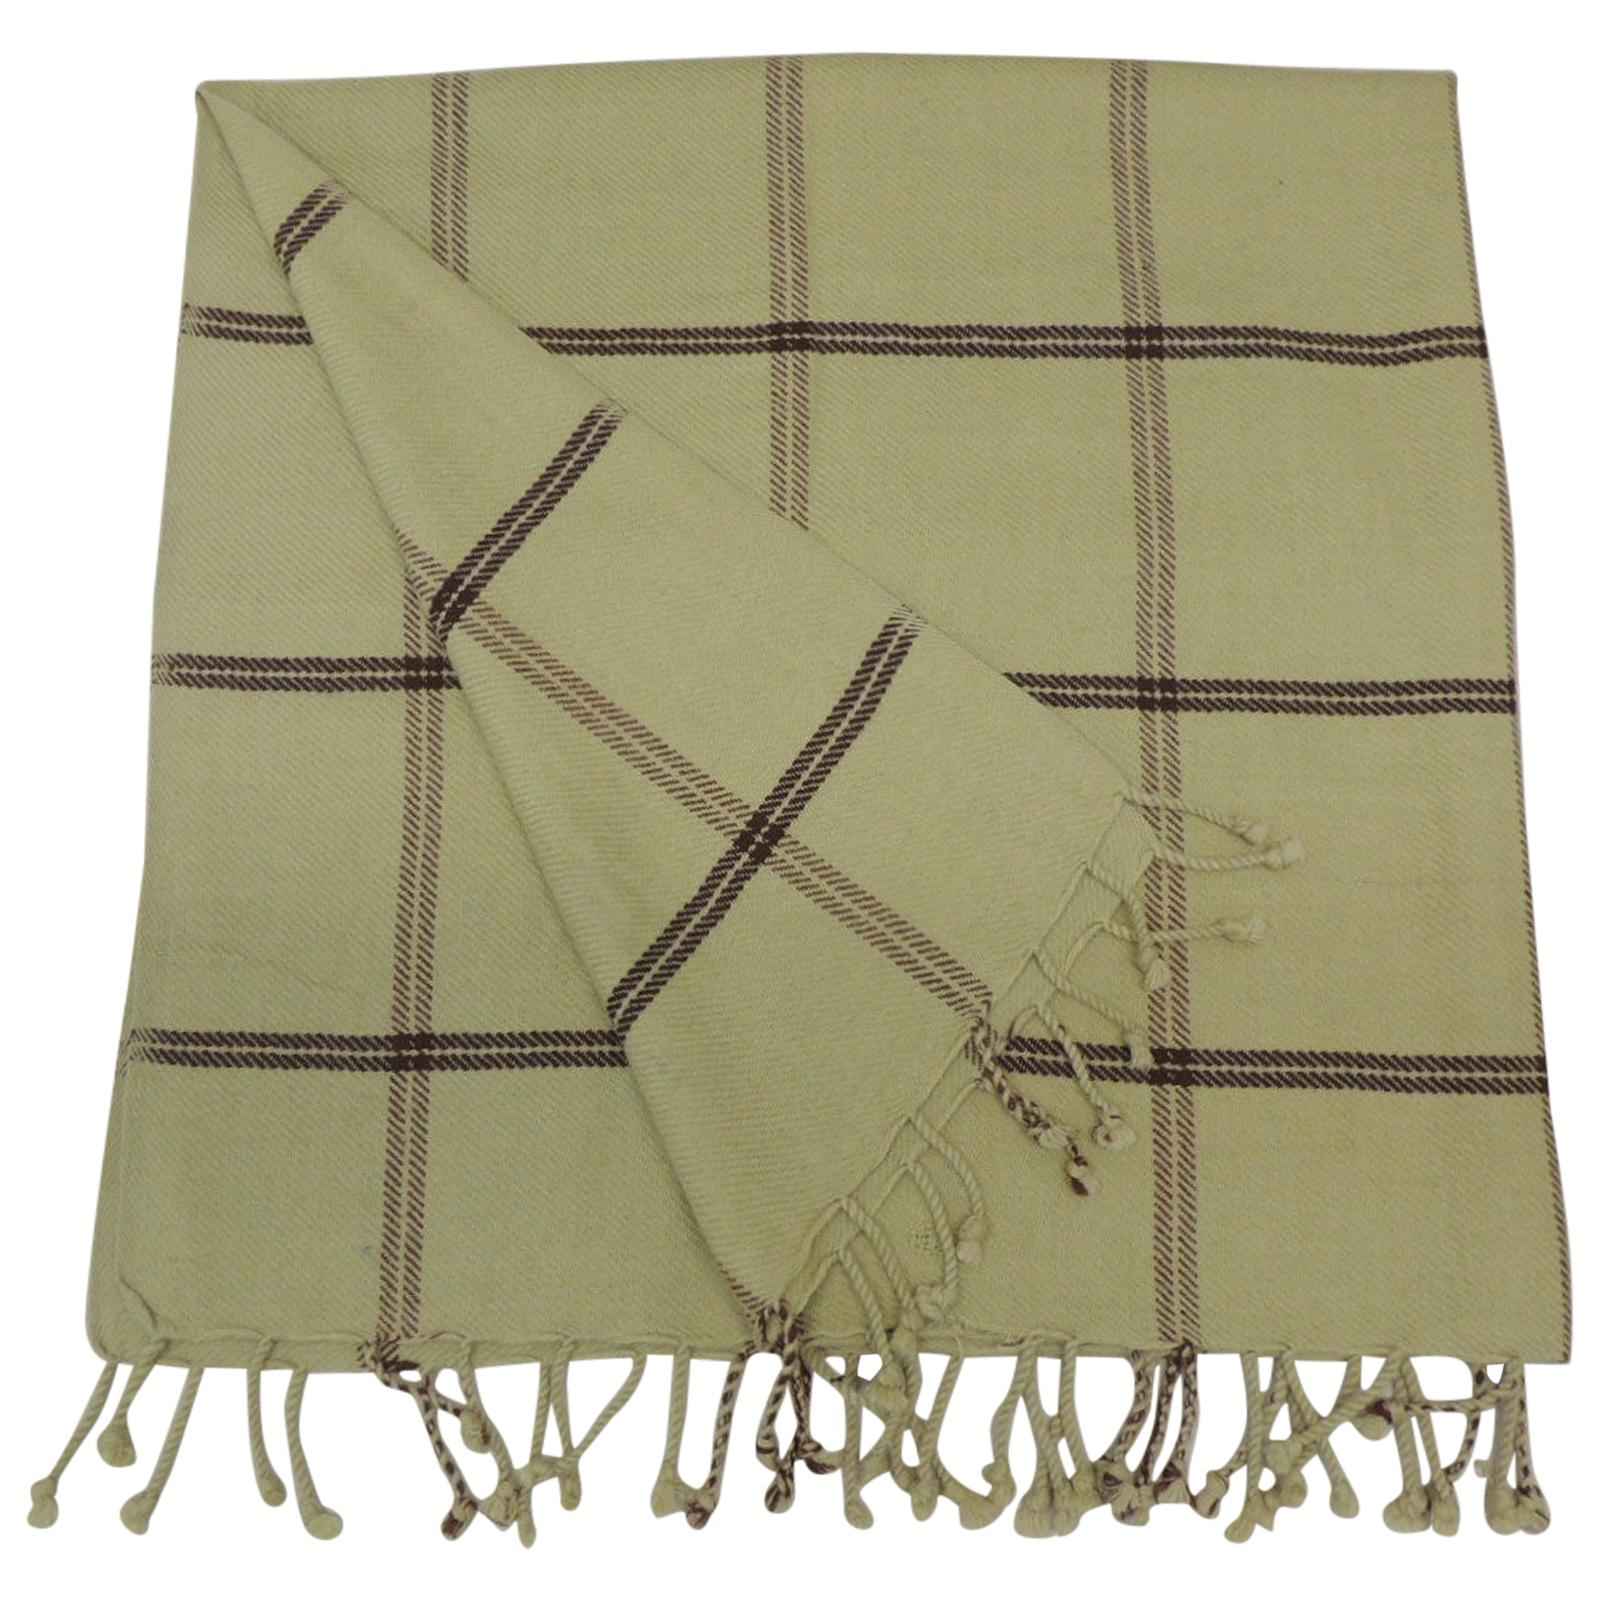 Woven Green and Brown Himalayan Cashmere Throw with Hand Knotted Fringes